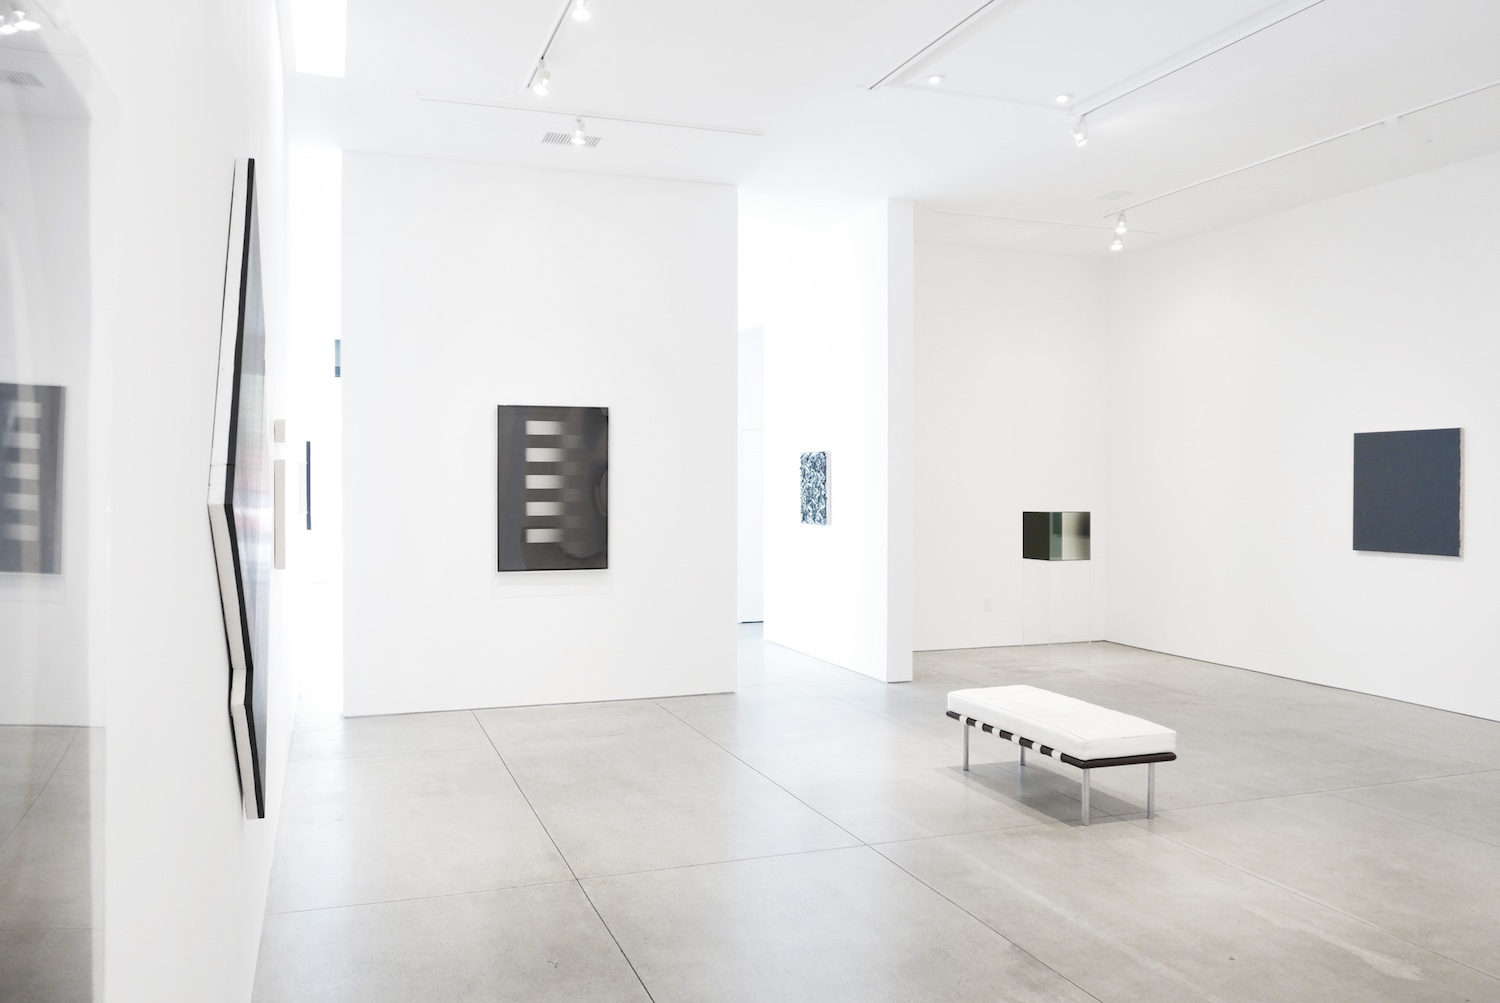 A Tribute to Kiyo Higashi, Installation View, Peter Blake Gallery_1.jpg